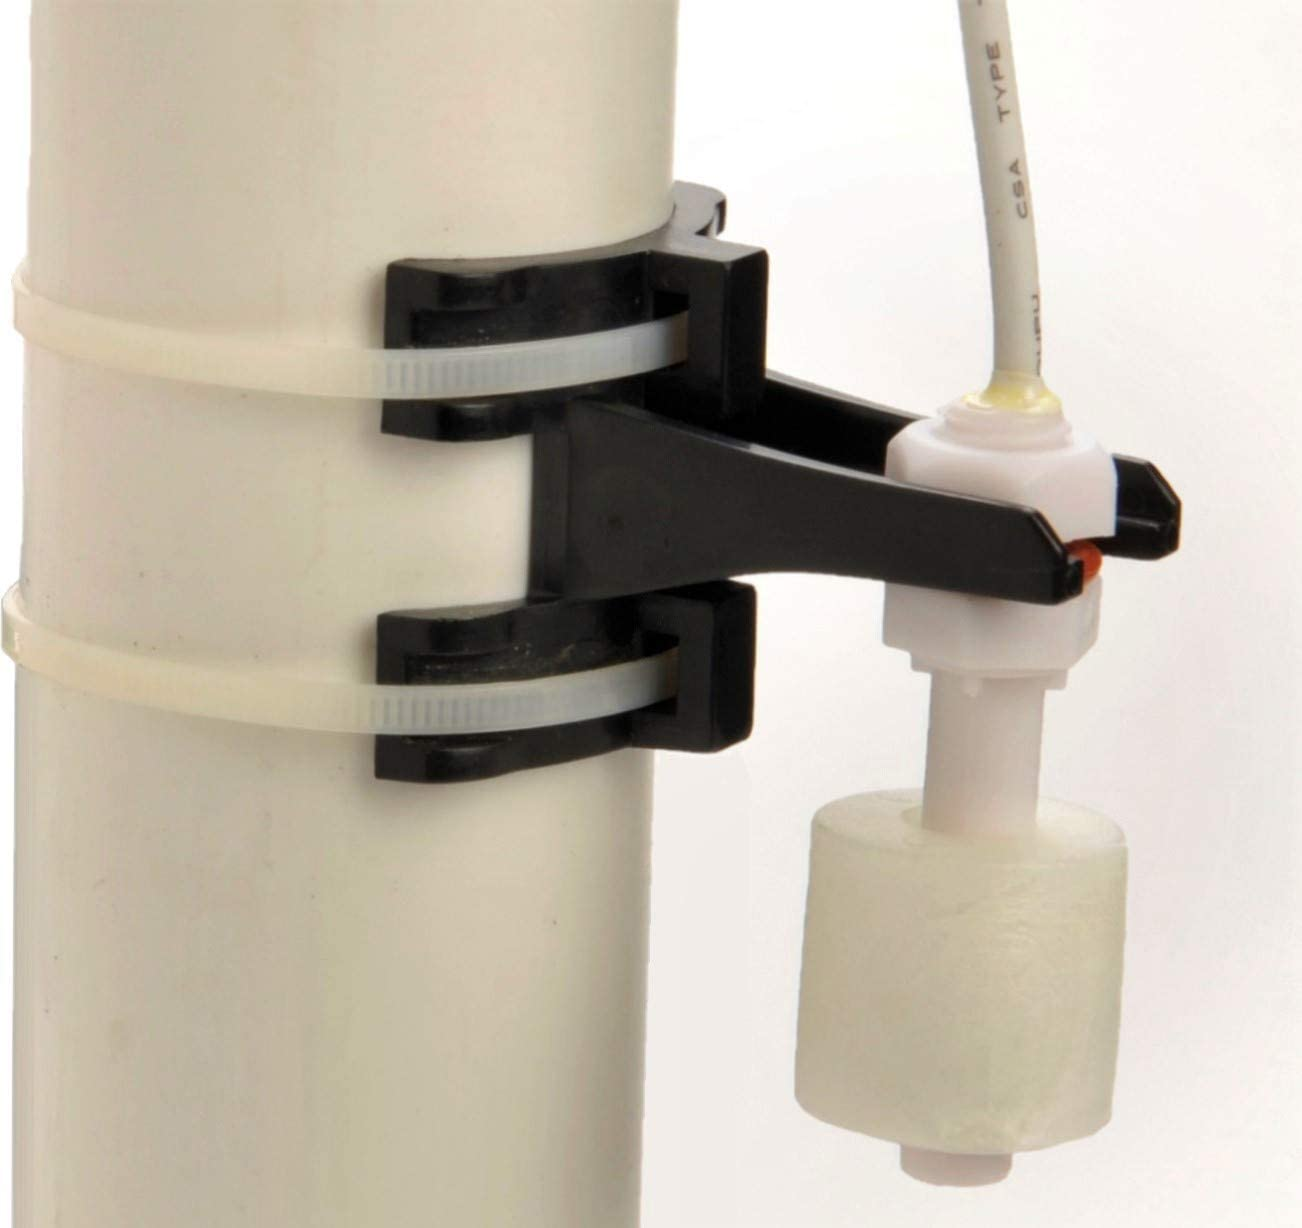 Level Sense 15 Austin Mall Max 90% OFF Feet Water Float Switch Brack with Mounting